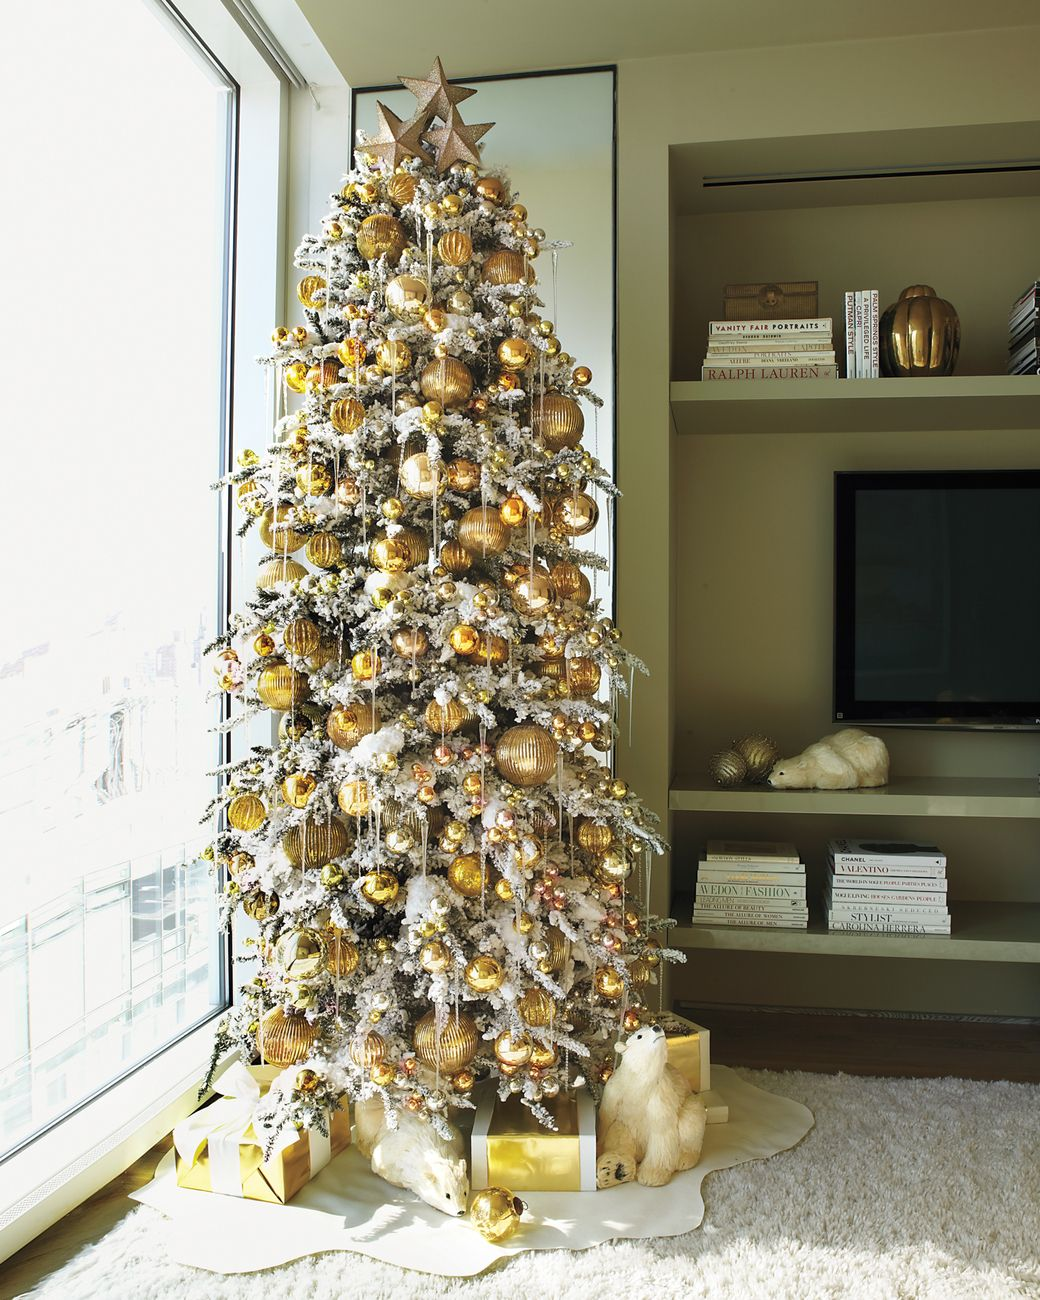 28 creative christmas tree decorating ideas | creative christmas